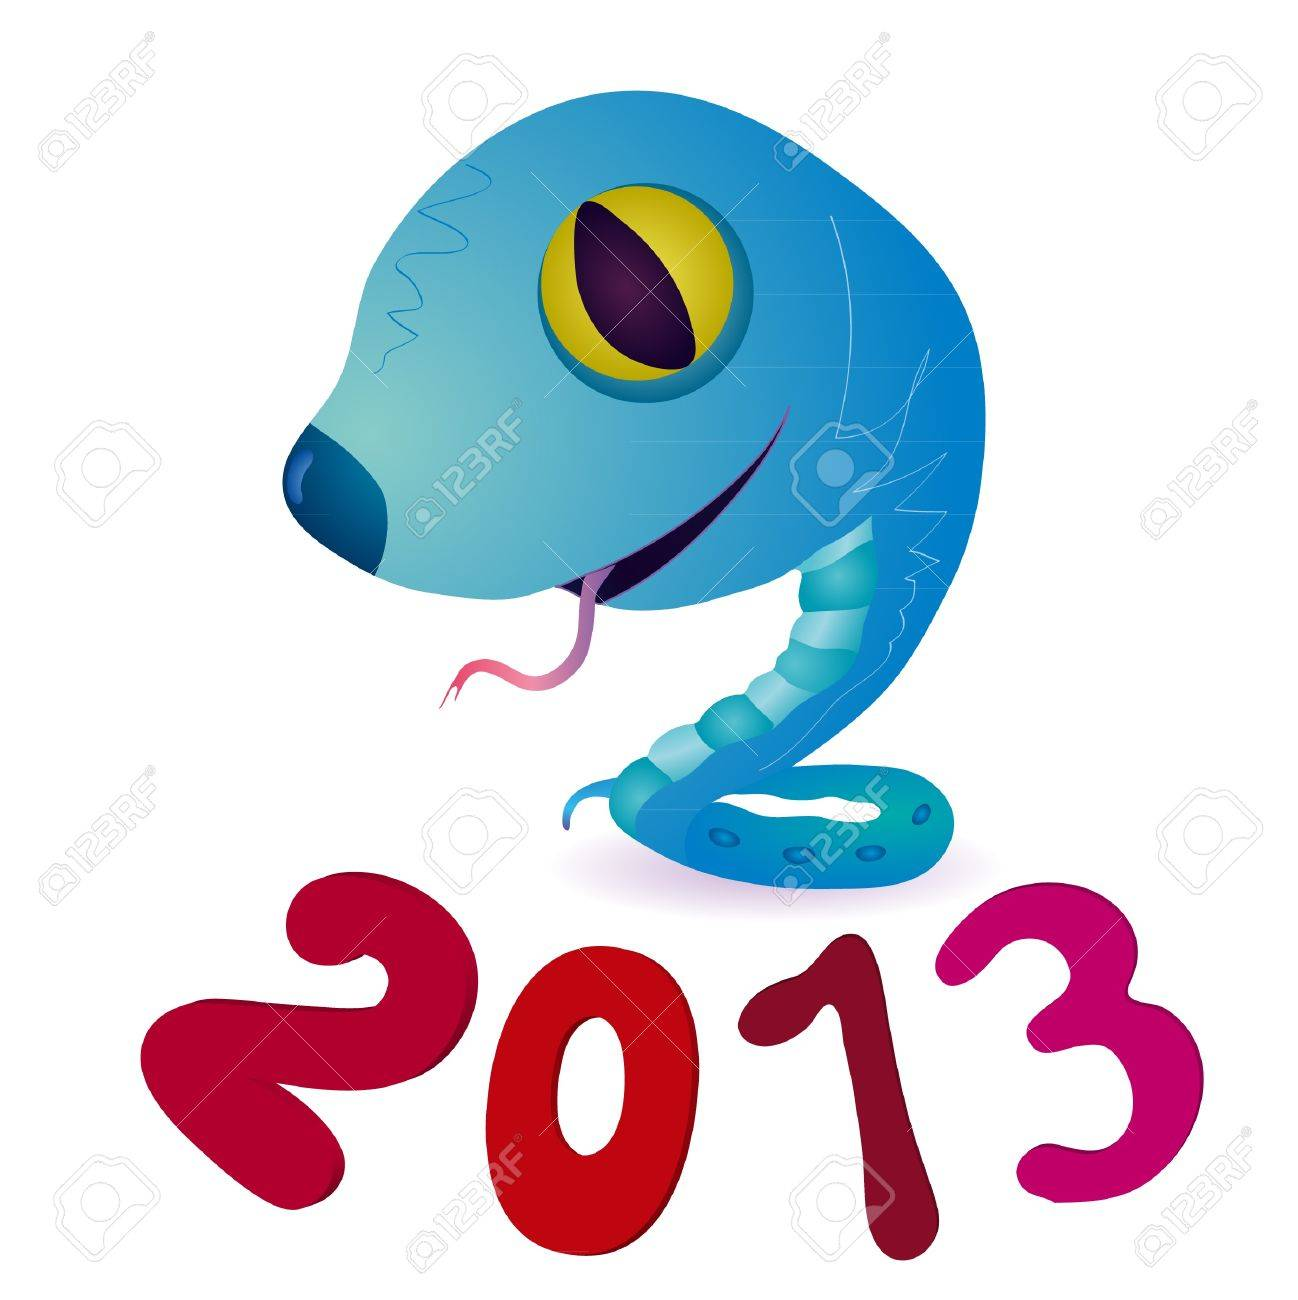 Funny blue little snake and symbols of 2013 New Year Stock Vector - 13247341